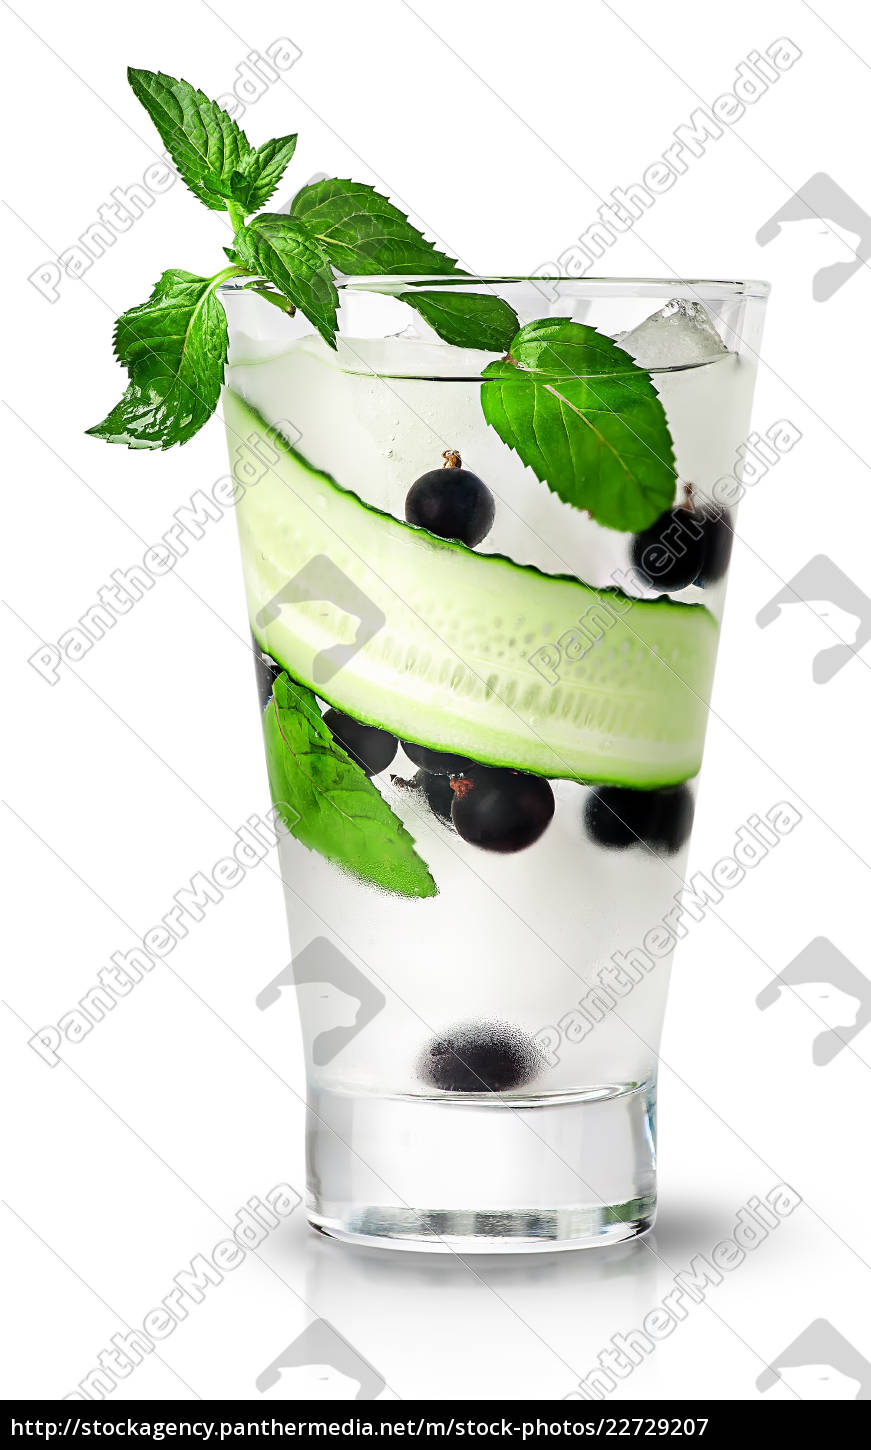 cucumber, currant, and, mint, lemonade - 22729207